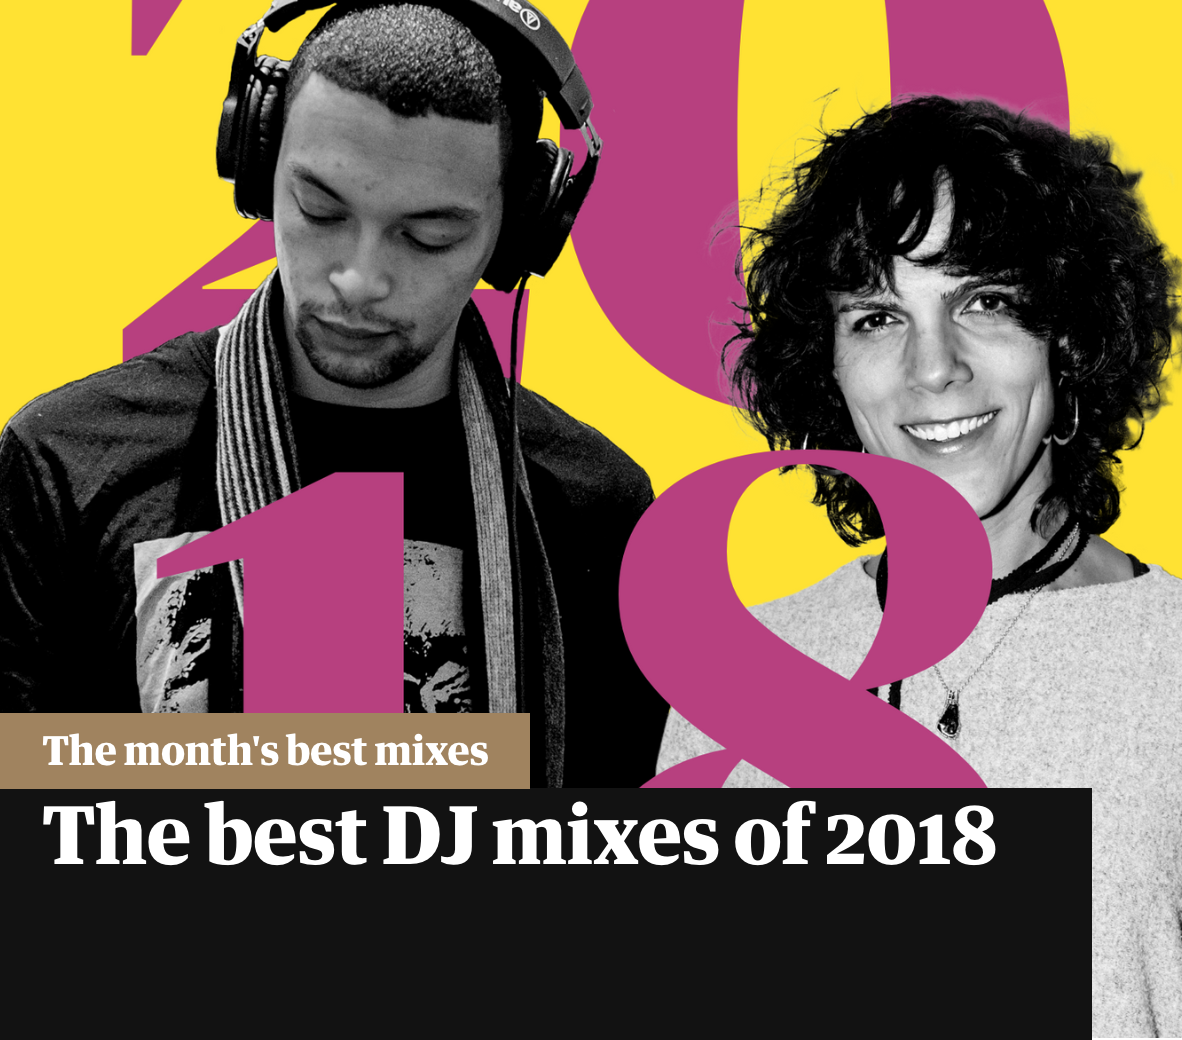 Forest Drive West featured in The Guardian's Best DJ mixes of 2018